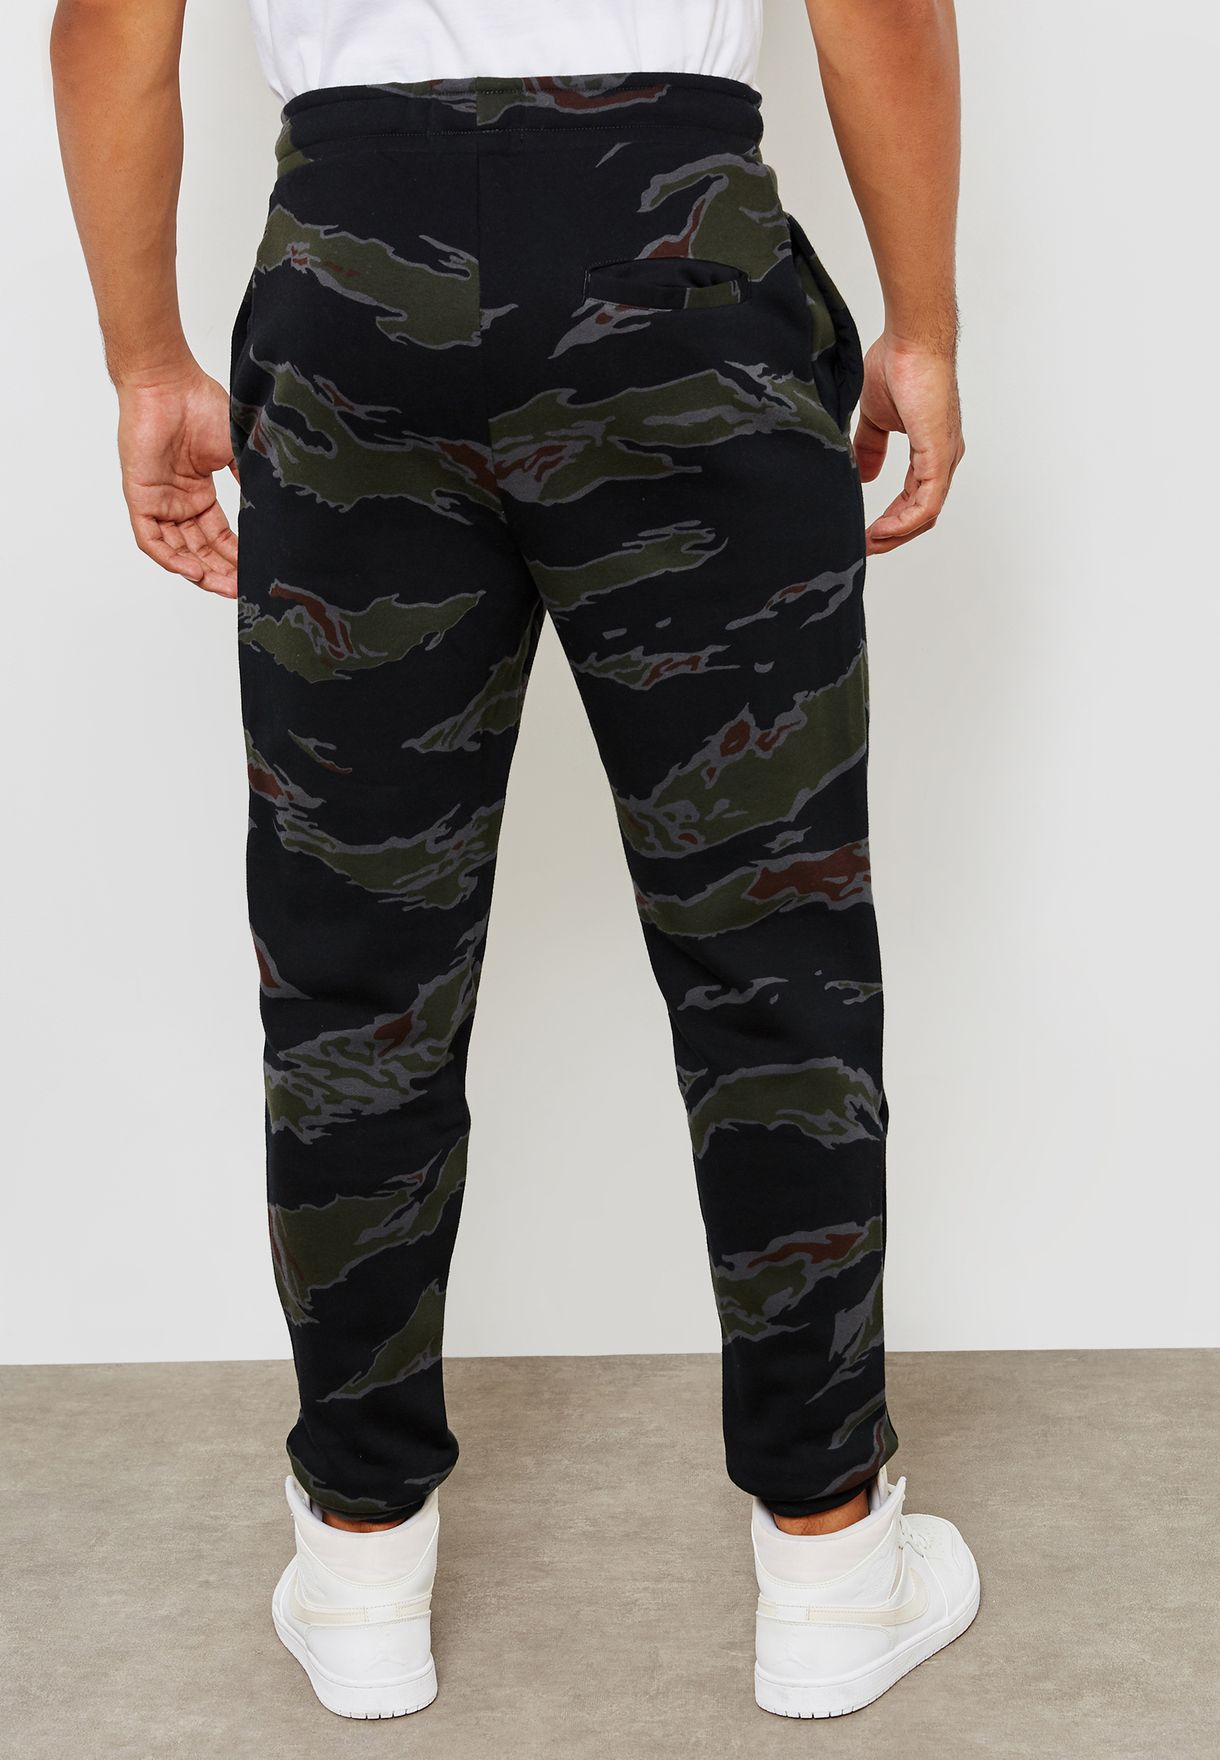 204093bef83384 Shop Nike prints Jordan Jumpman Fleece Camo Sweatpants AV2316-010 ...